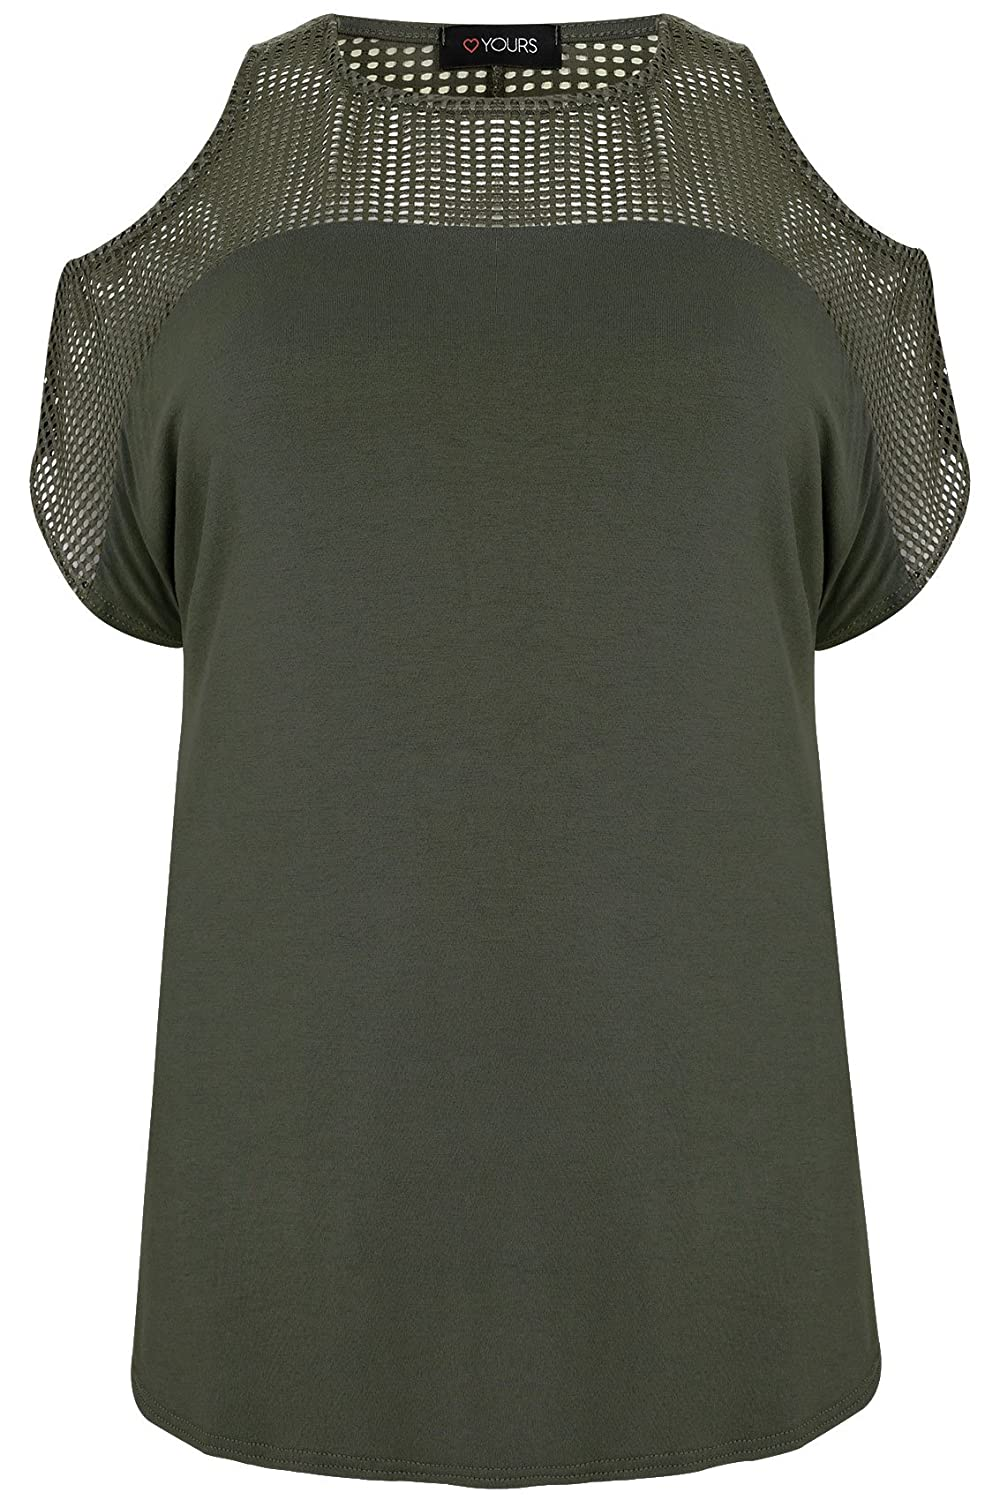 Yoursclothing Plus Size Womens Cold Shoulder Top With Mesh Panels